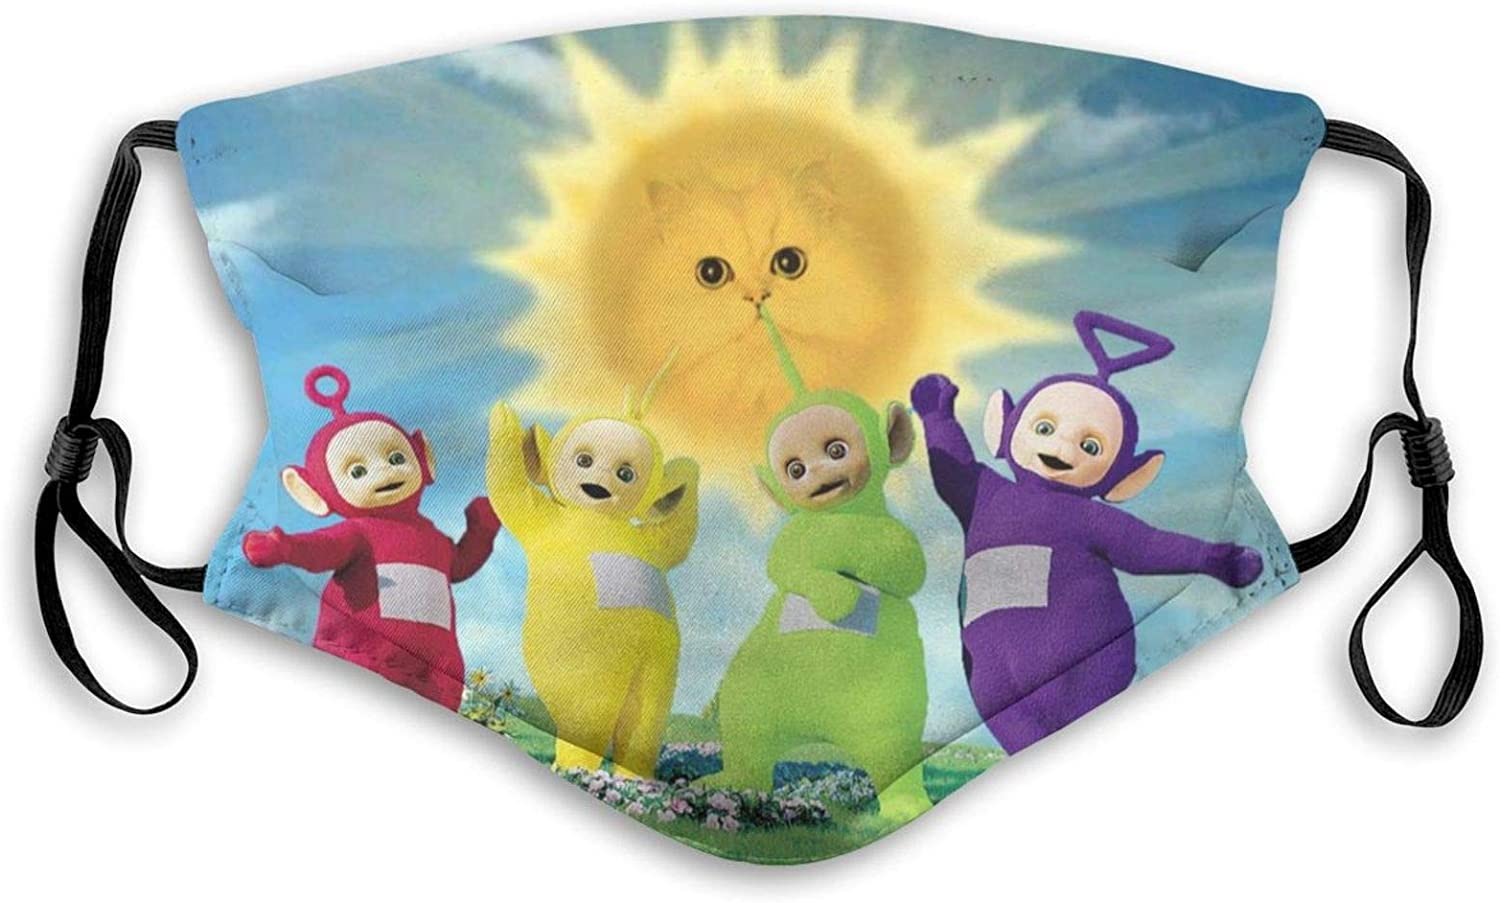 Teletubbies Face Mask Reusable for Adult&Kid Cover Protection Balaclava with 2 Filter, Made in USA